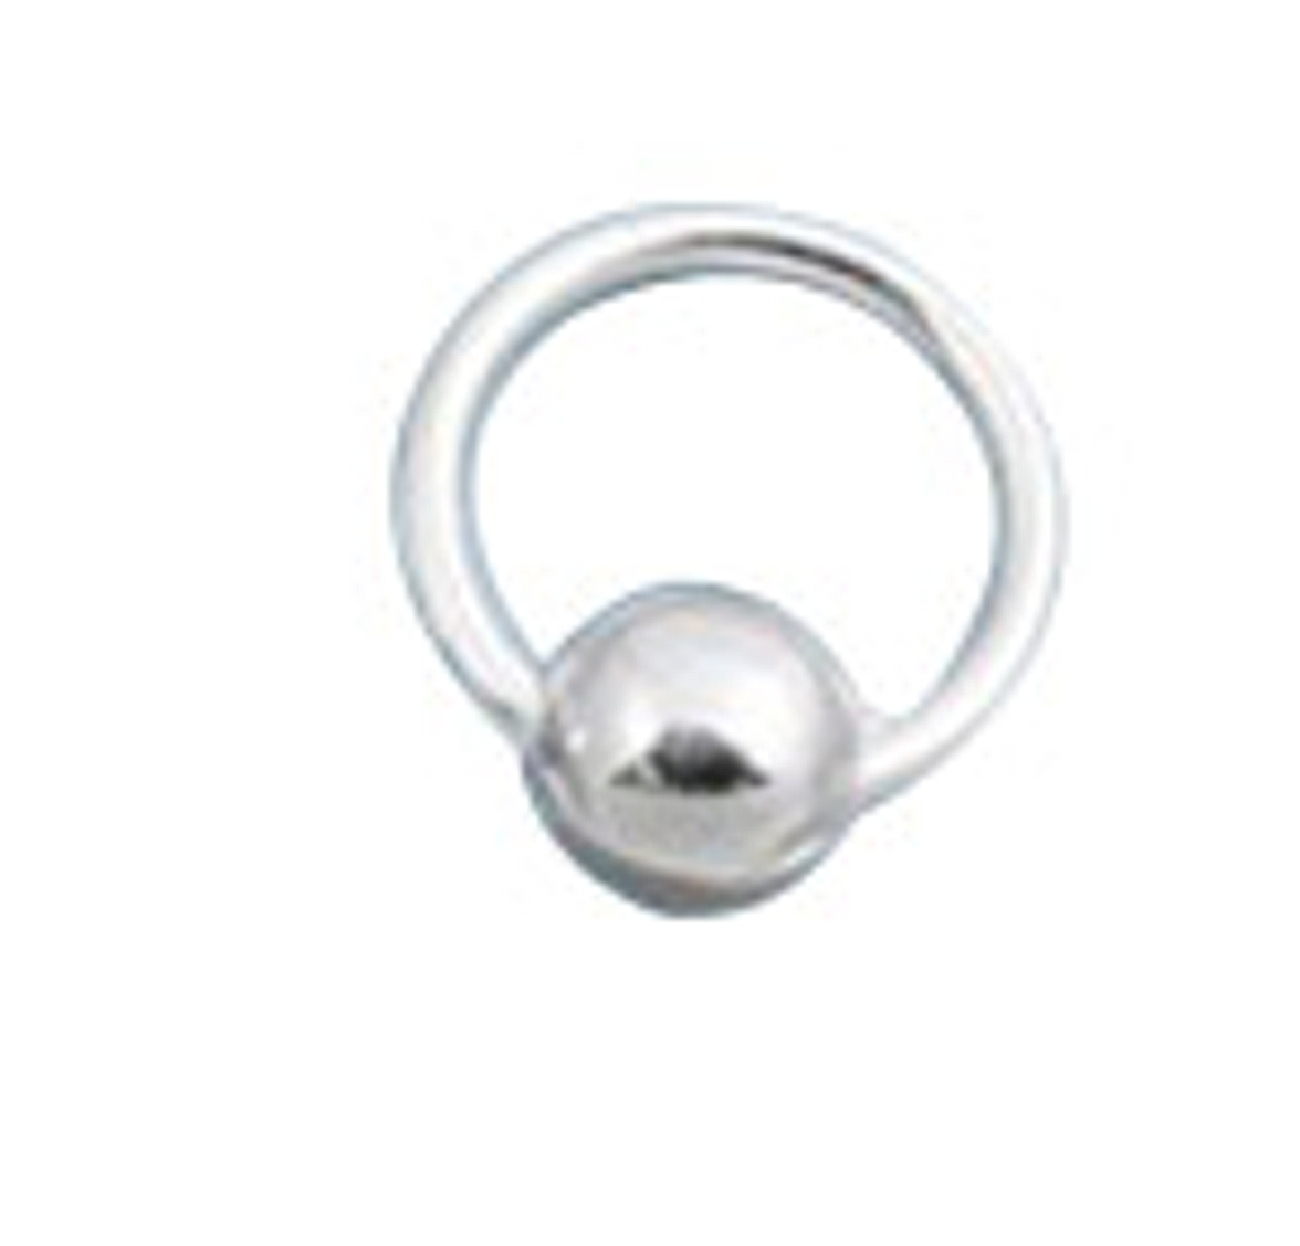 10mm Pierced Ear Ball Charm Wire Band Ring Ear Cuff